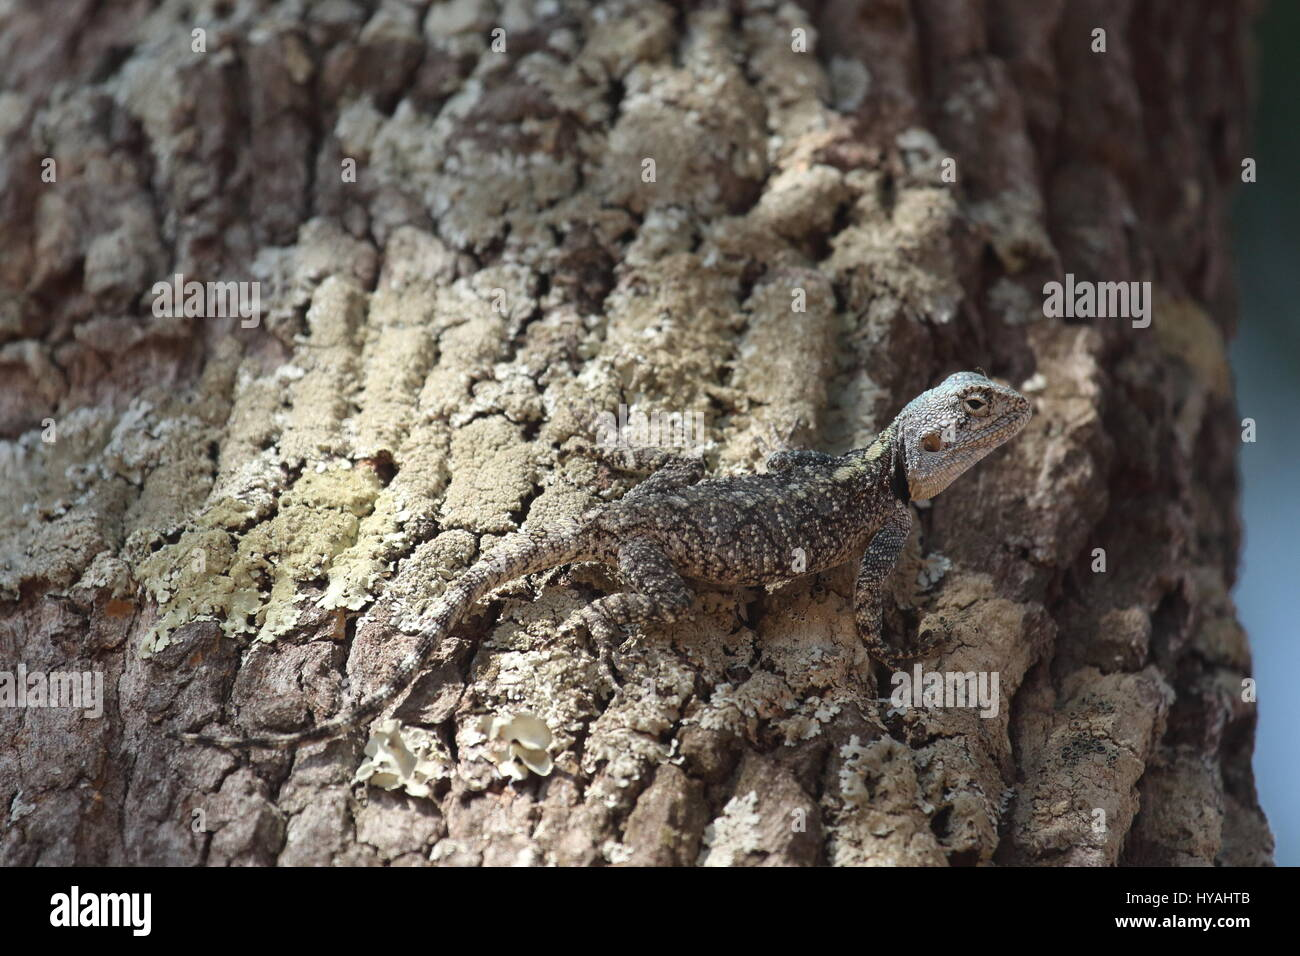 Branch's Tree Agama Acanthocercus branchii, Zambia, Africa - Stock Image